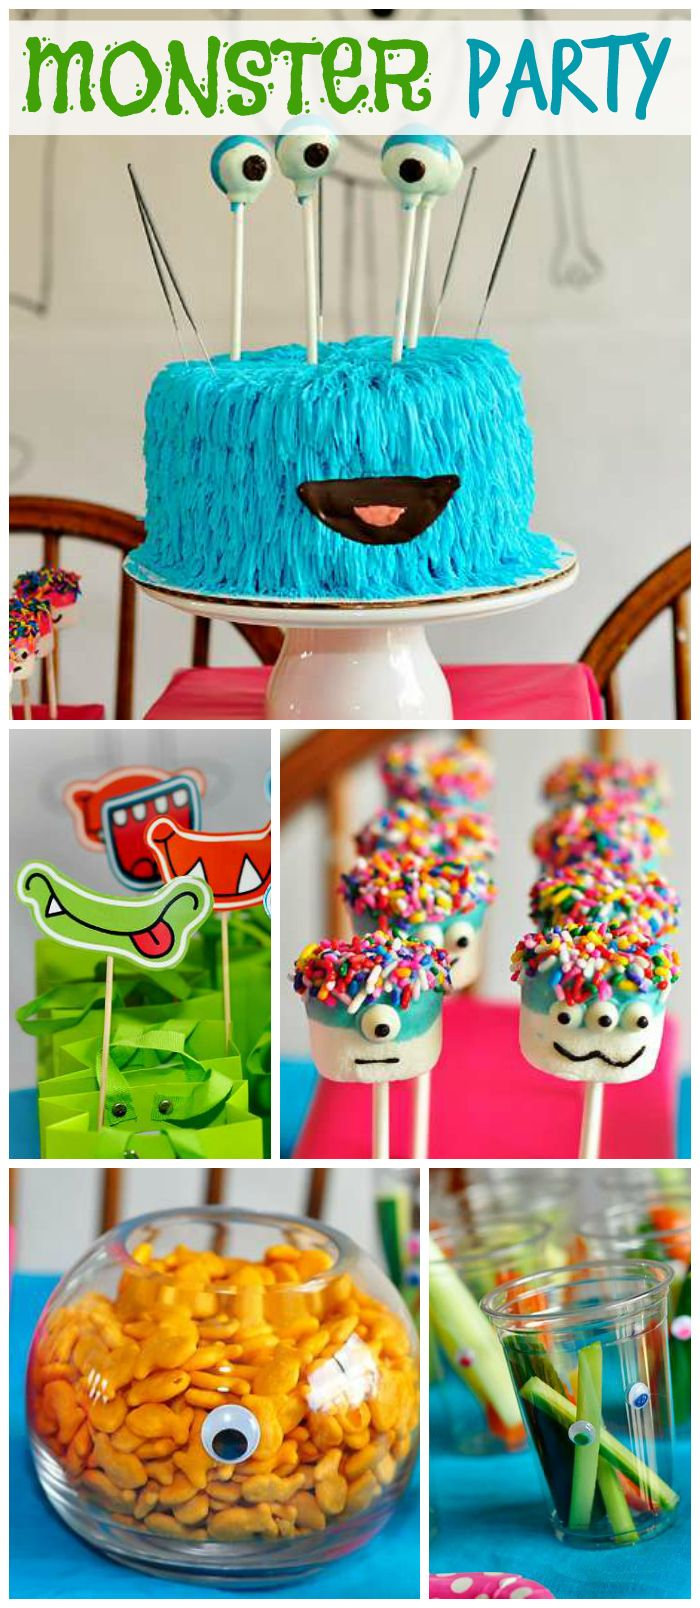 A Monster Themed Girl Birthday Party With Fun Cake Marshmallow Pops And Hand Drawn